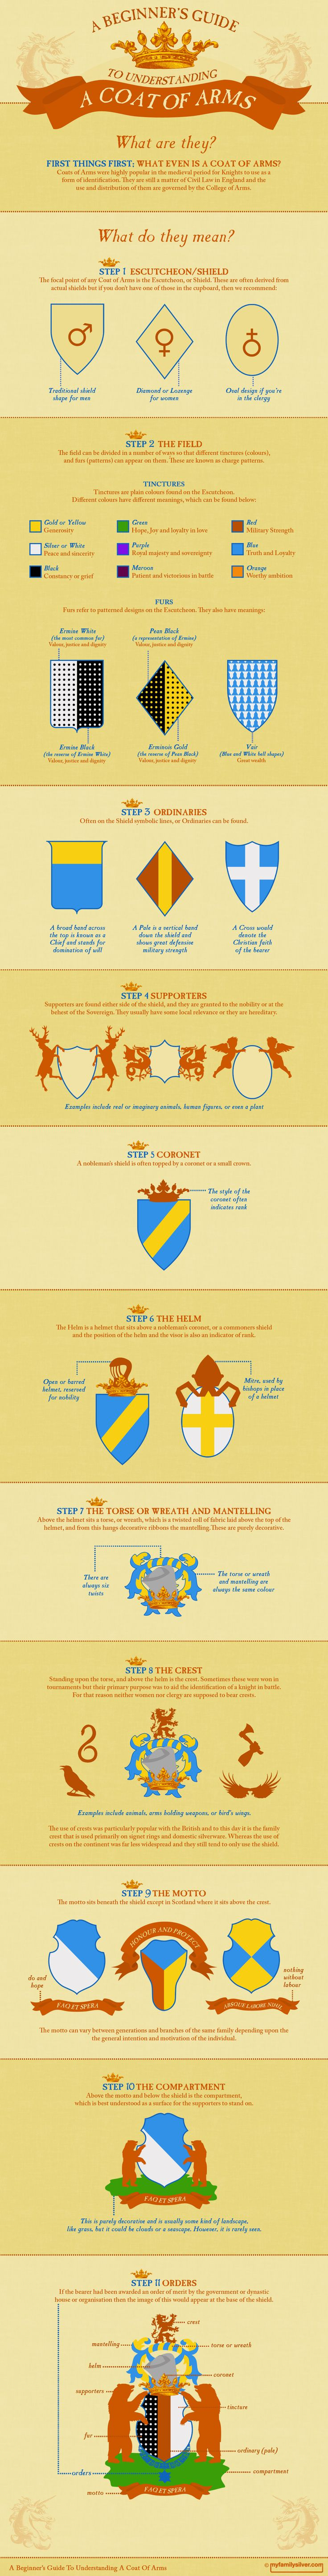 Infographic: A beginner's guide to understanding a coat of arms | A Blog About History - History News